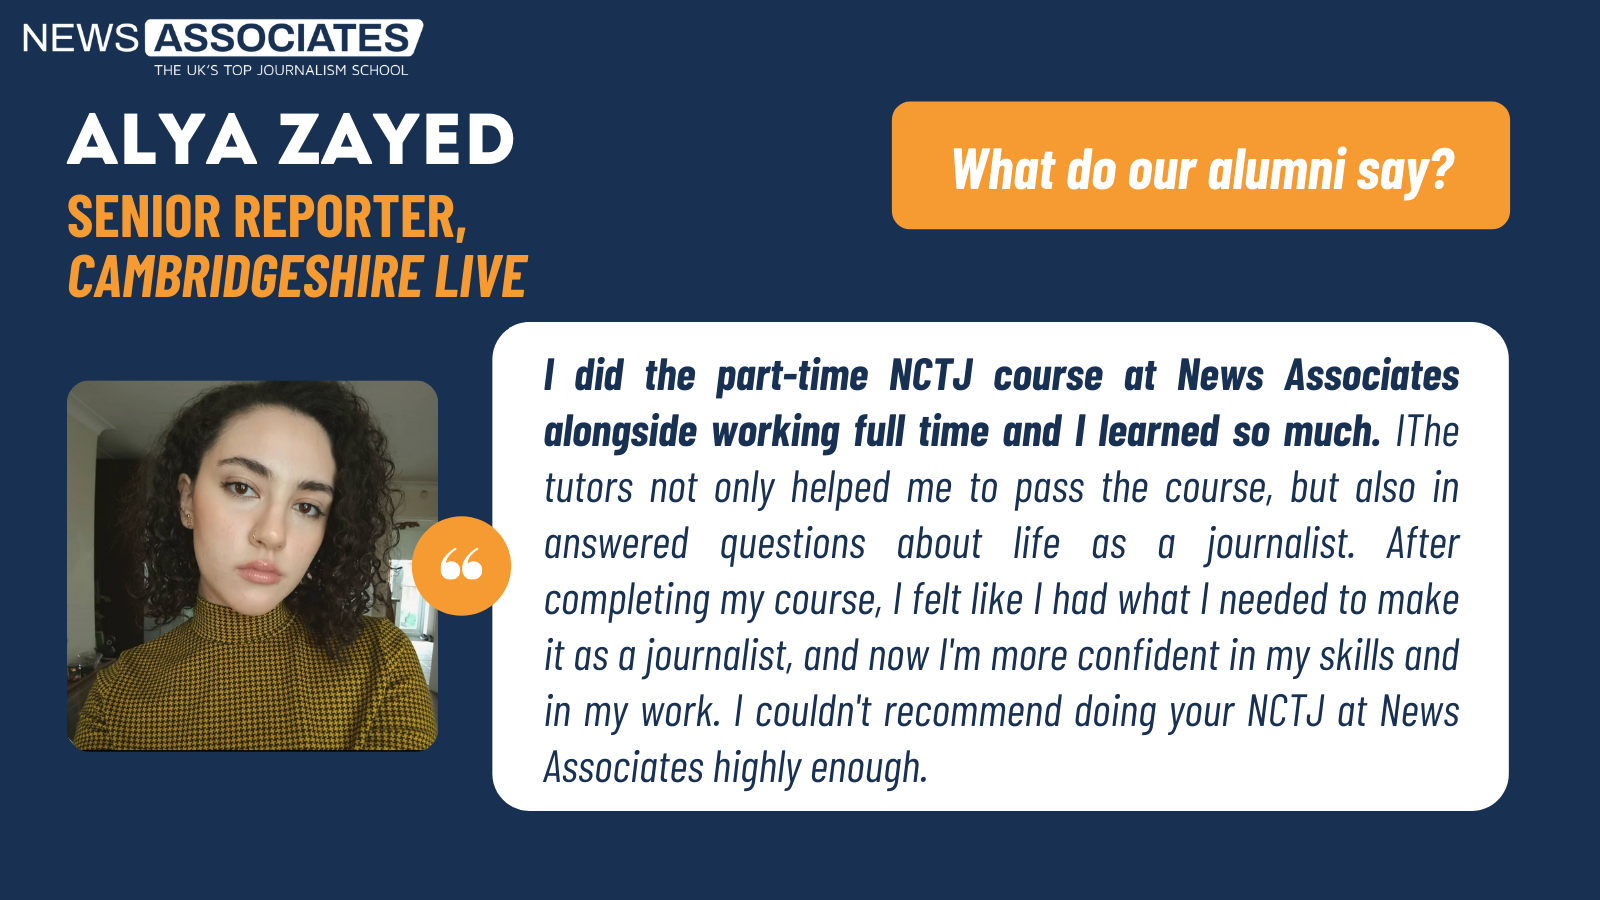 Alya Zayed, journalist at Cambridgeshire Live's testimonial: I did the part-time NCTJ course at News Associates alongside working full time and I learned so much. IThe tutors not only helped me to pass the course, but also in answered questions about life as a journalist. After completing my course, I felt like I had what I needed to make it as a journalist, and now I'm more confident in my skills and in my work. I couldn't recommend doing your NCTJ at News Associates highly enough.